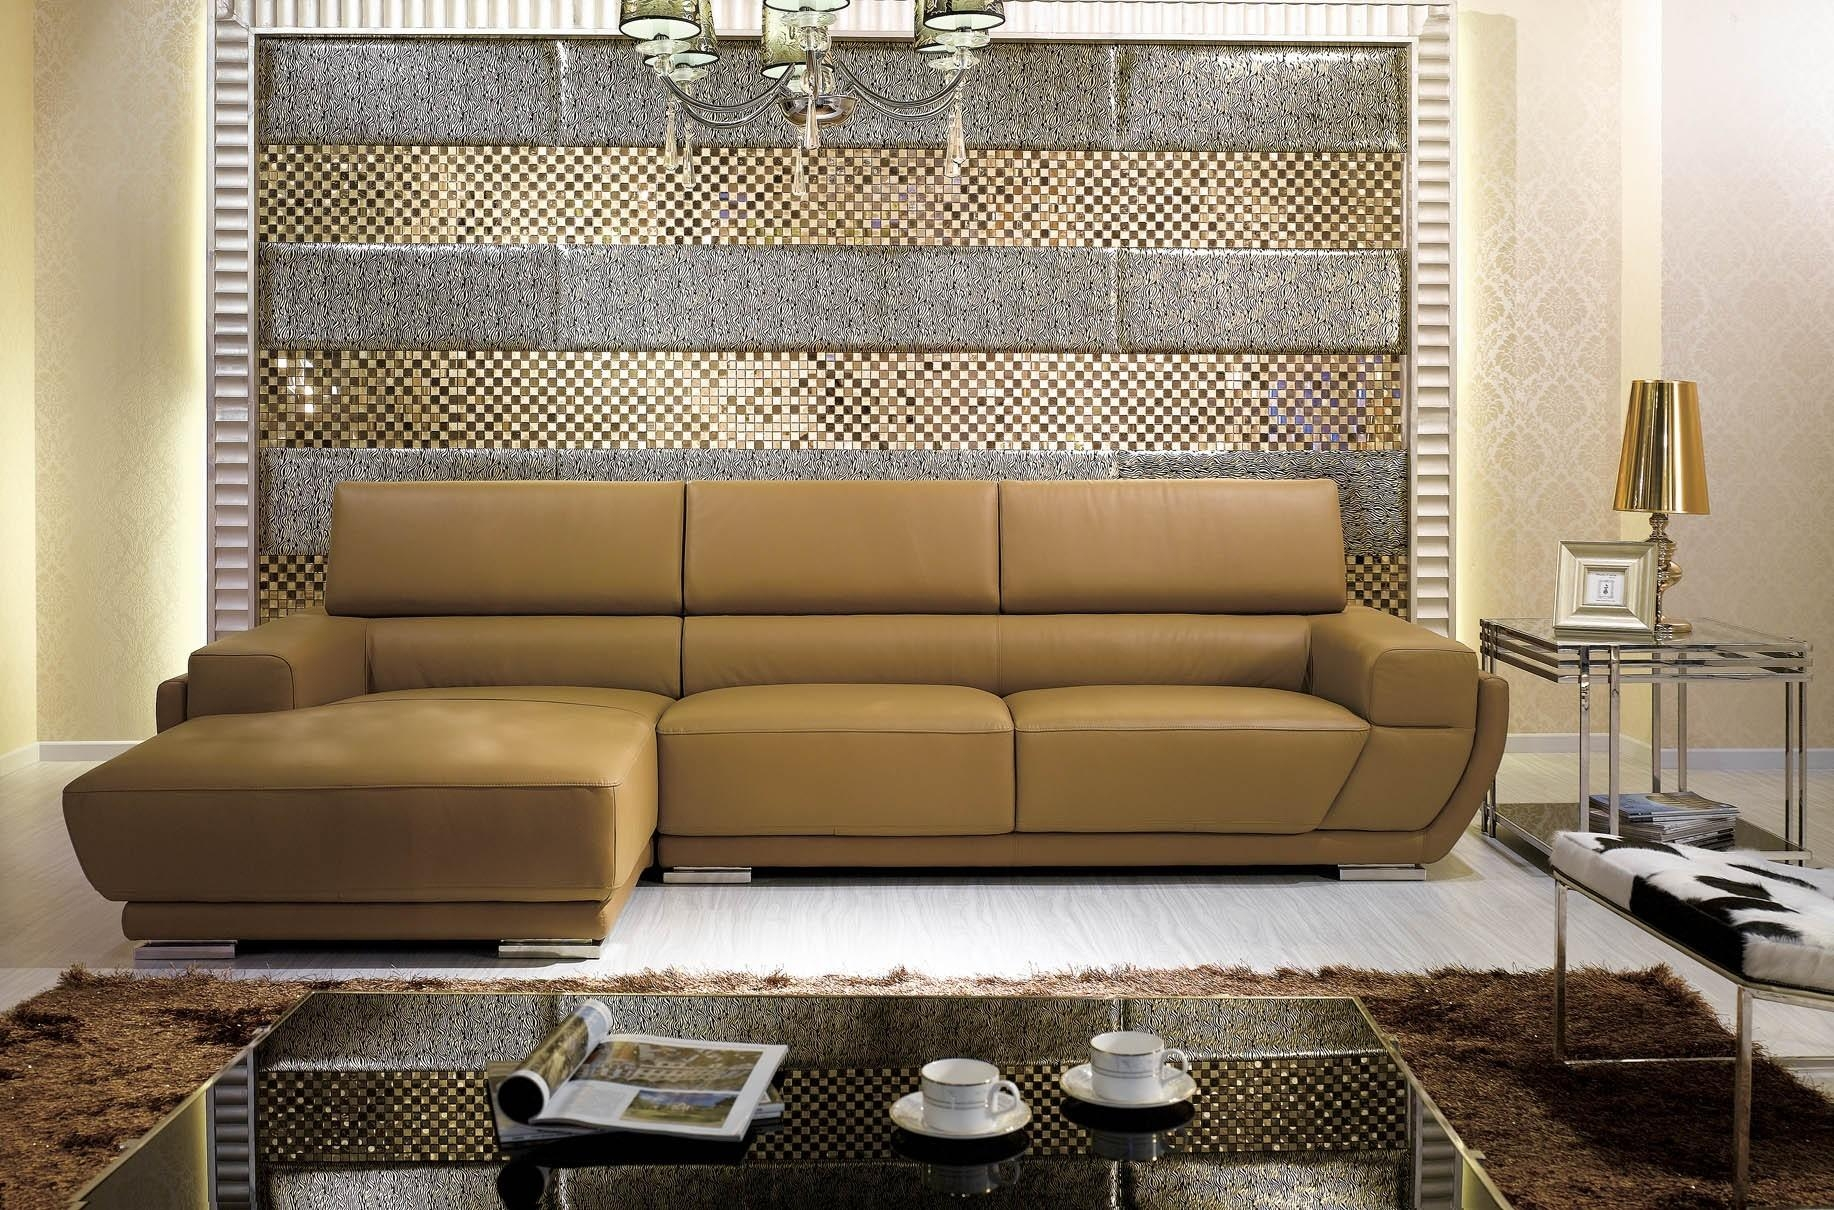 K8300 Modern Camel Italian Leather Sectional Sofa Throughout Camel Colored Sectional Sofa (View 4 of 15)